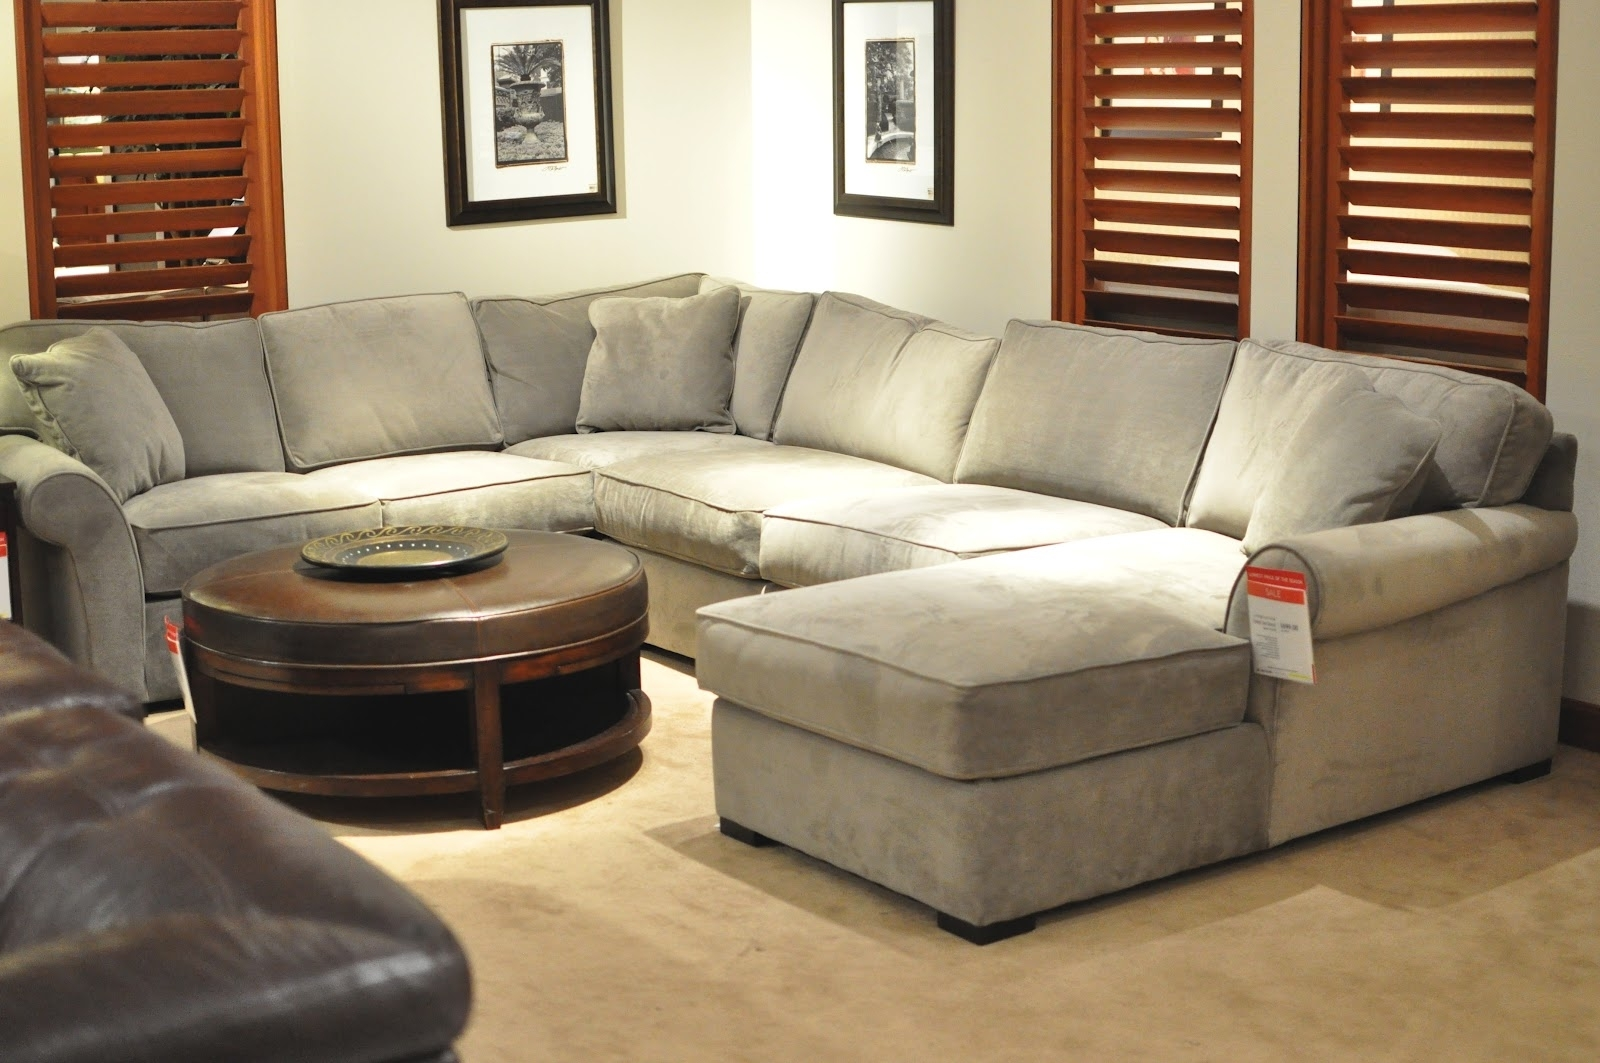 Not So Newlywed Mcgees: Shopping For A Sectional Regarding Phoenix Sectional Sofas (Photo 4 of 10)